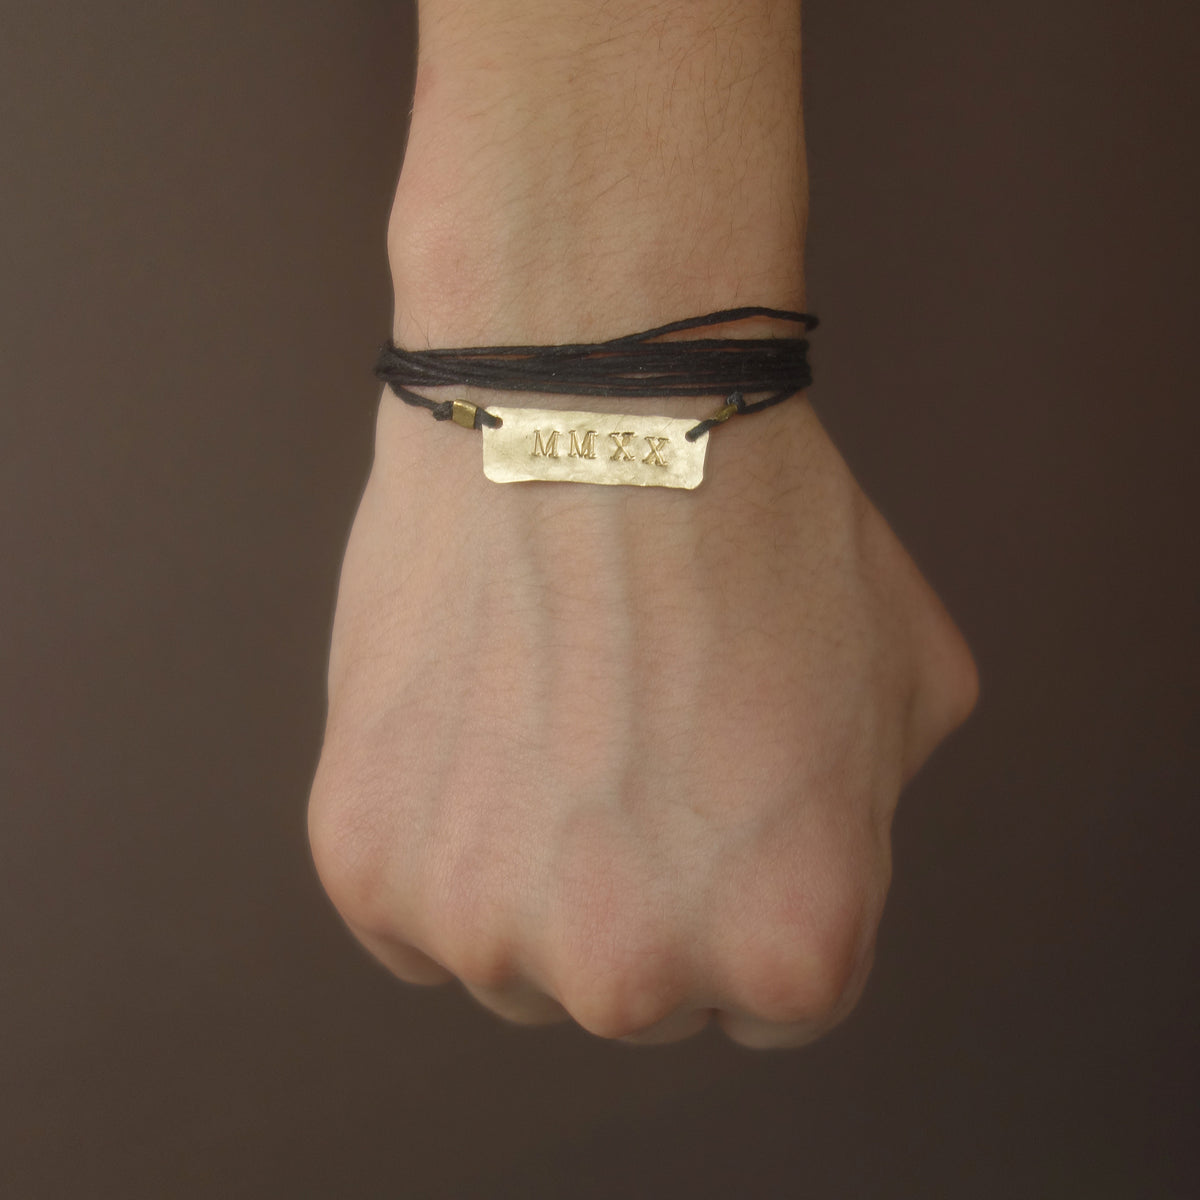 MMXX: hand hammered gold on leather necklace/bracelet